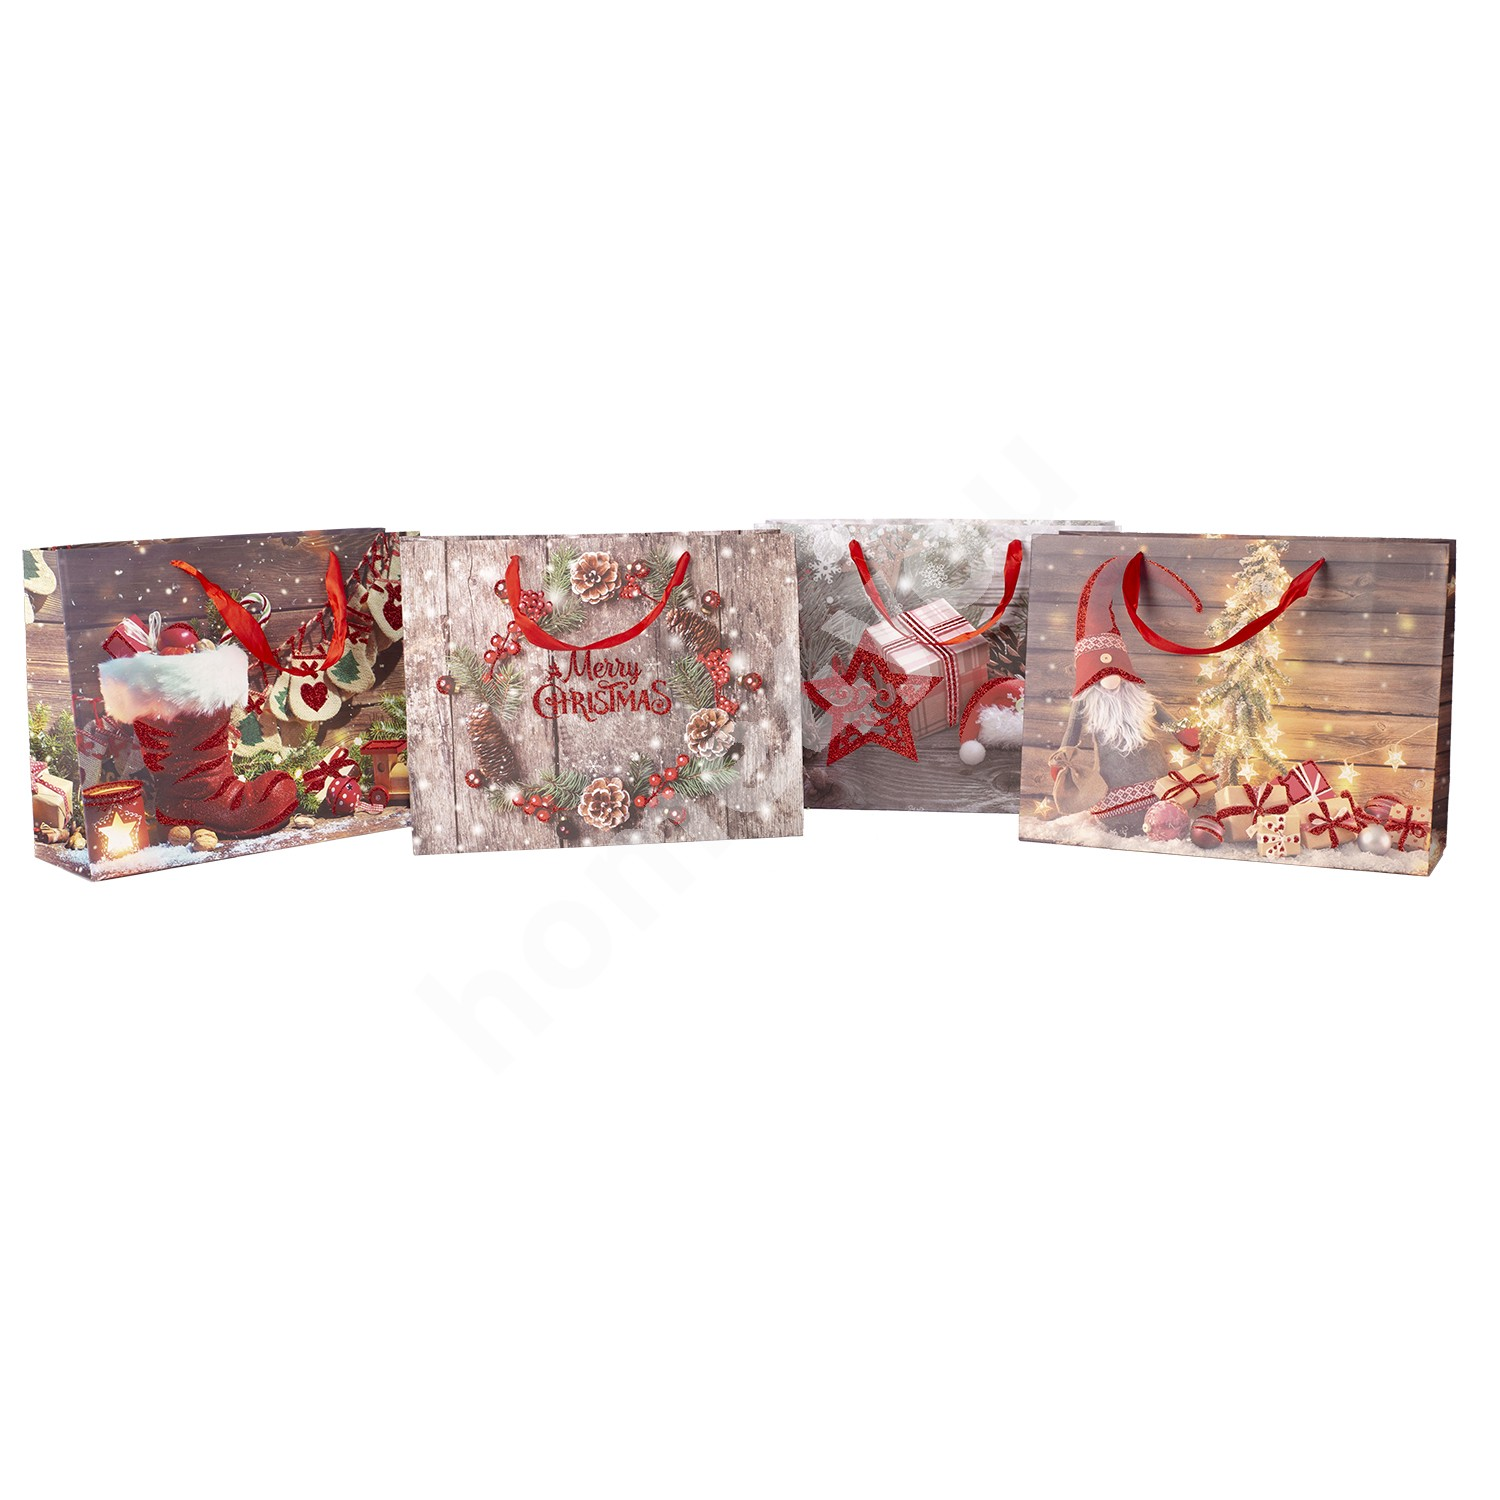 Gift bag SPARKS-2, 25x32x11cm, red glitter, mix